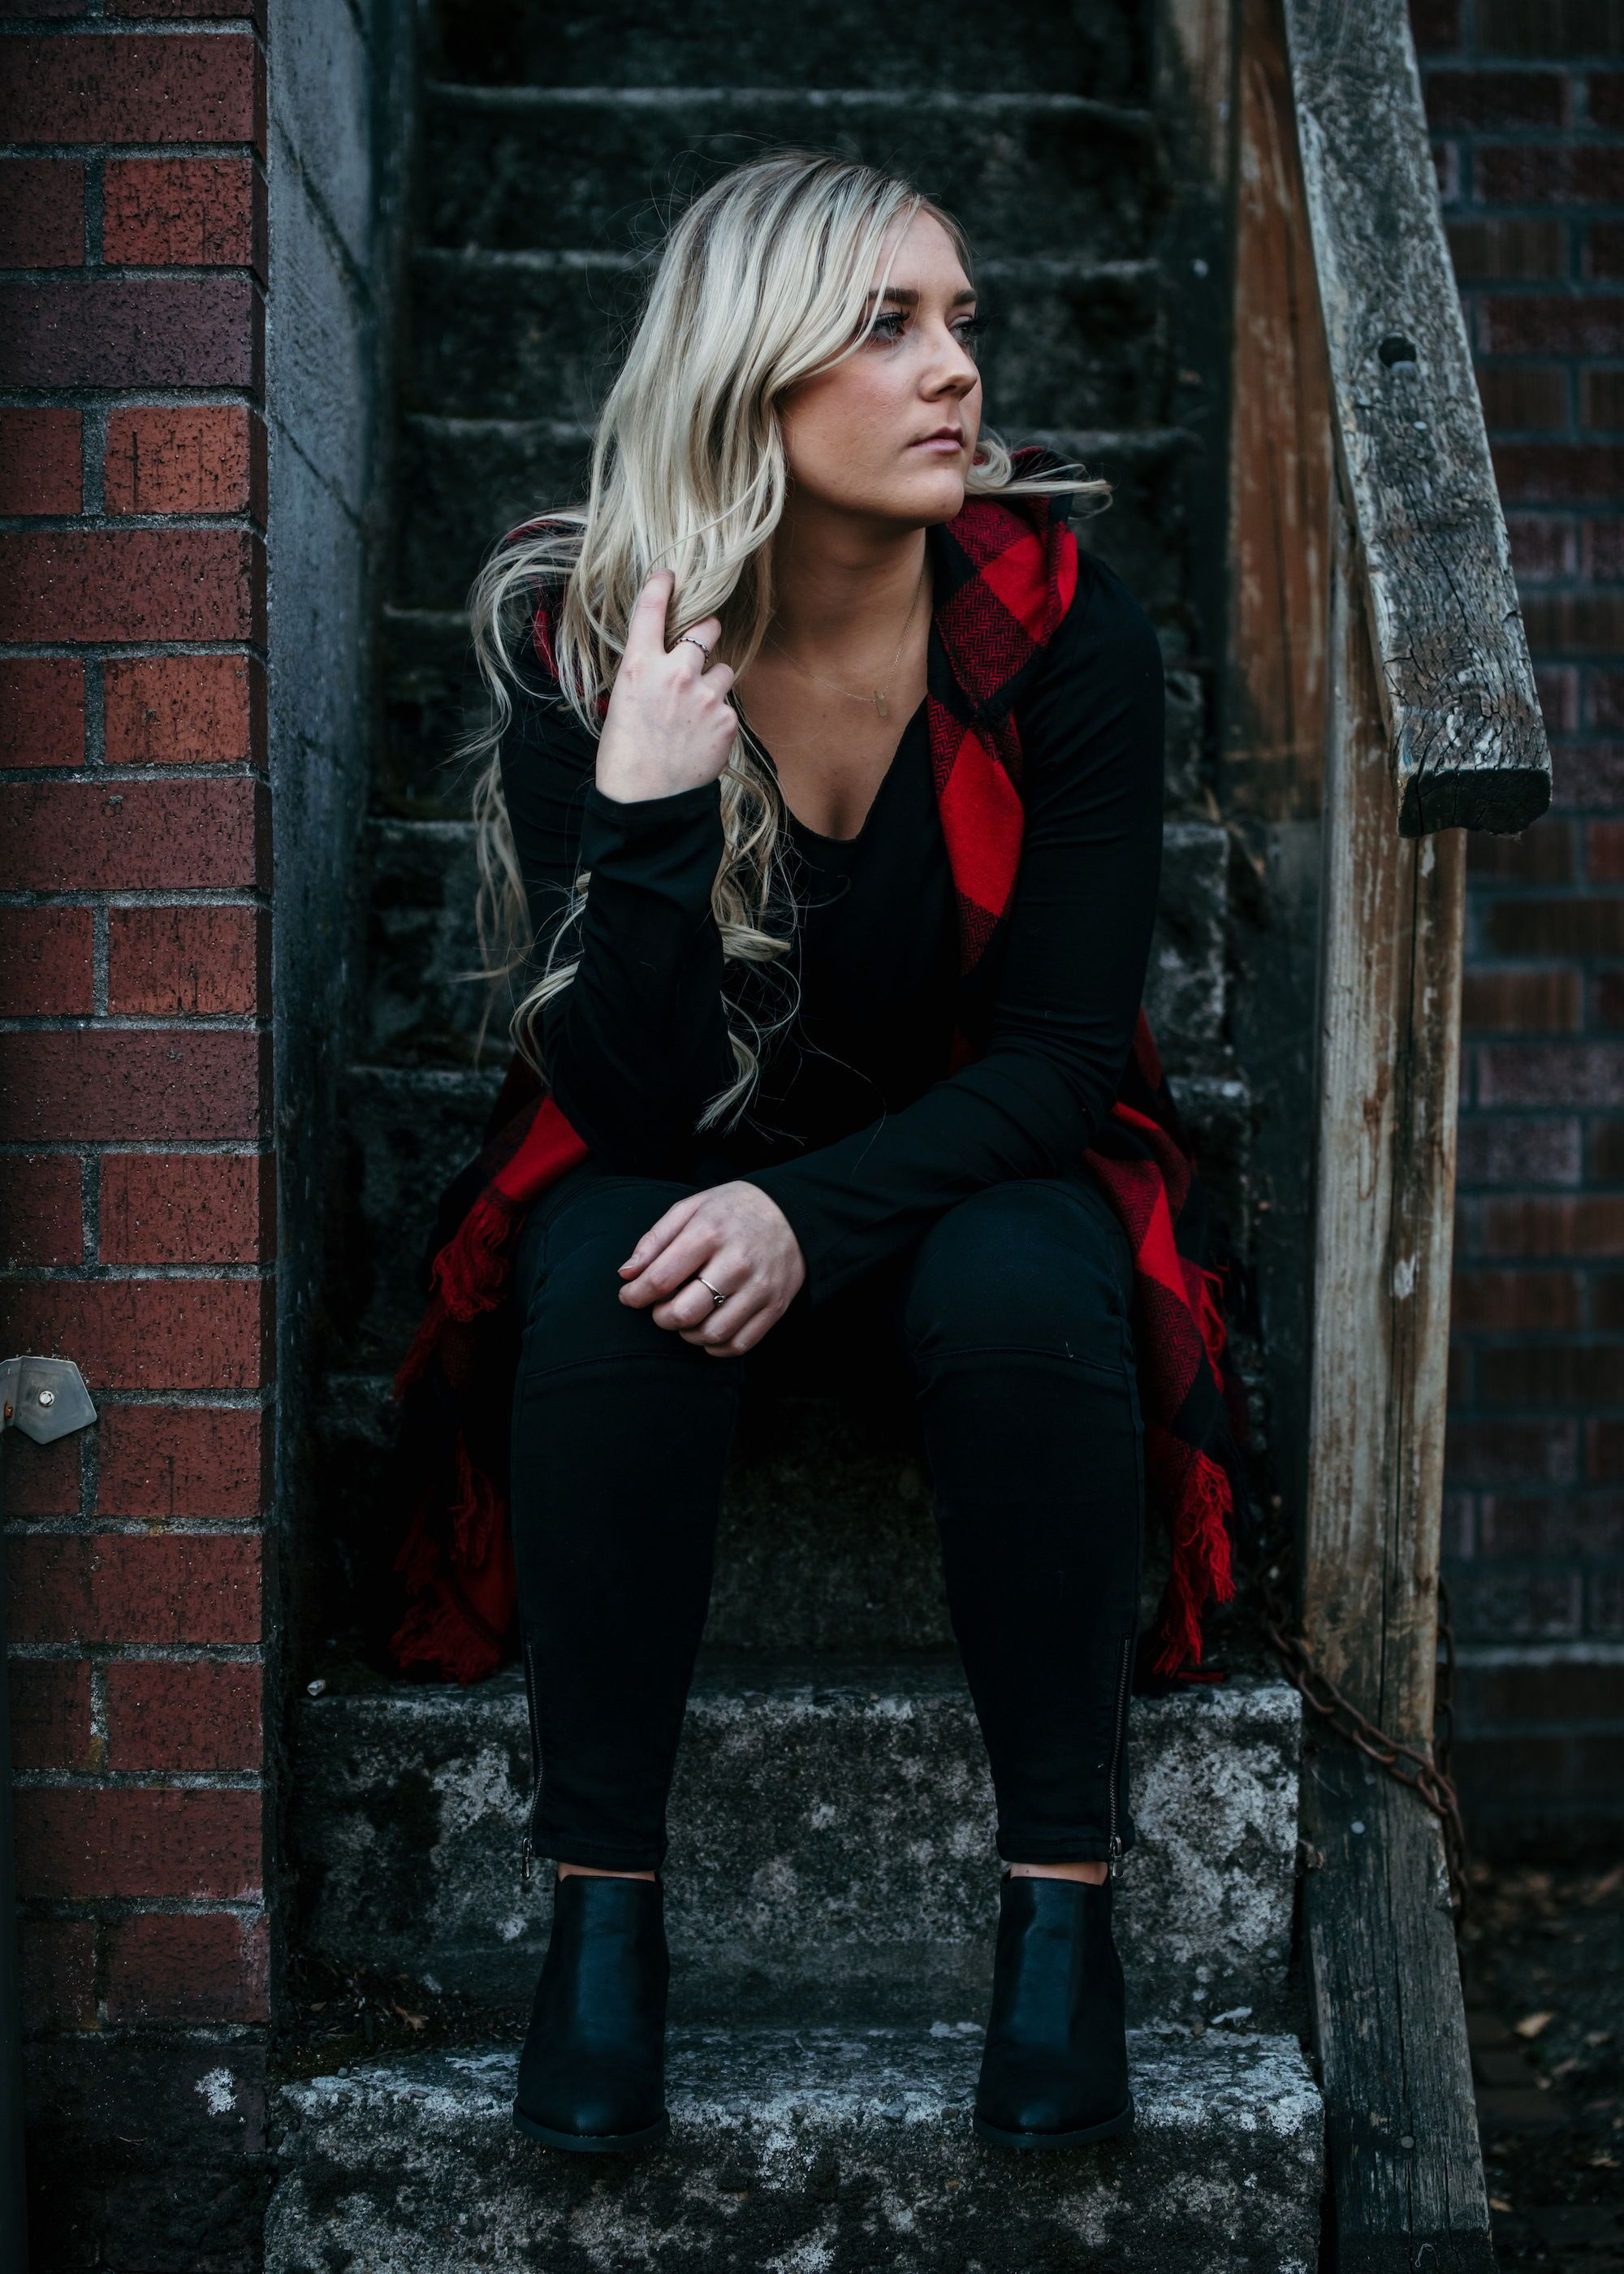 Bring on the Holidays! Our Buffalo Plaid Red and Black